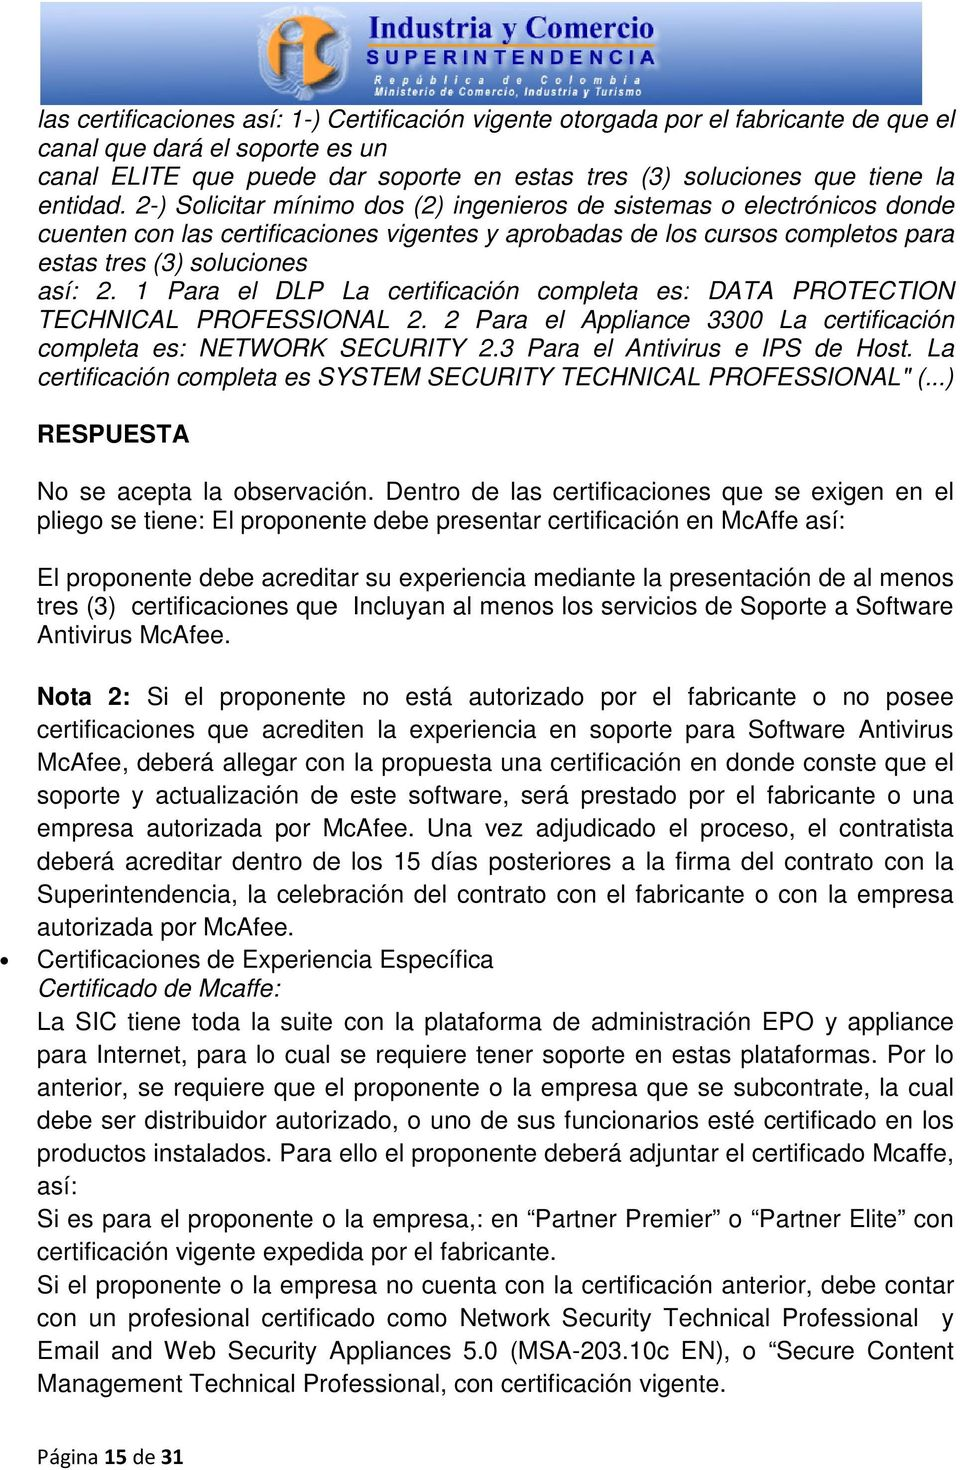 1 Para el DLP La certificación completa es: DATA PROTECTION TECHNICAL PROFESSIONAL 2. 2 Para el Appliance 3300 La certificación completa es: NETWORK SECURITY 2.3 Para el Antivirus e IPS de Host.